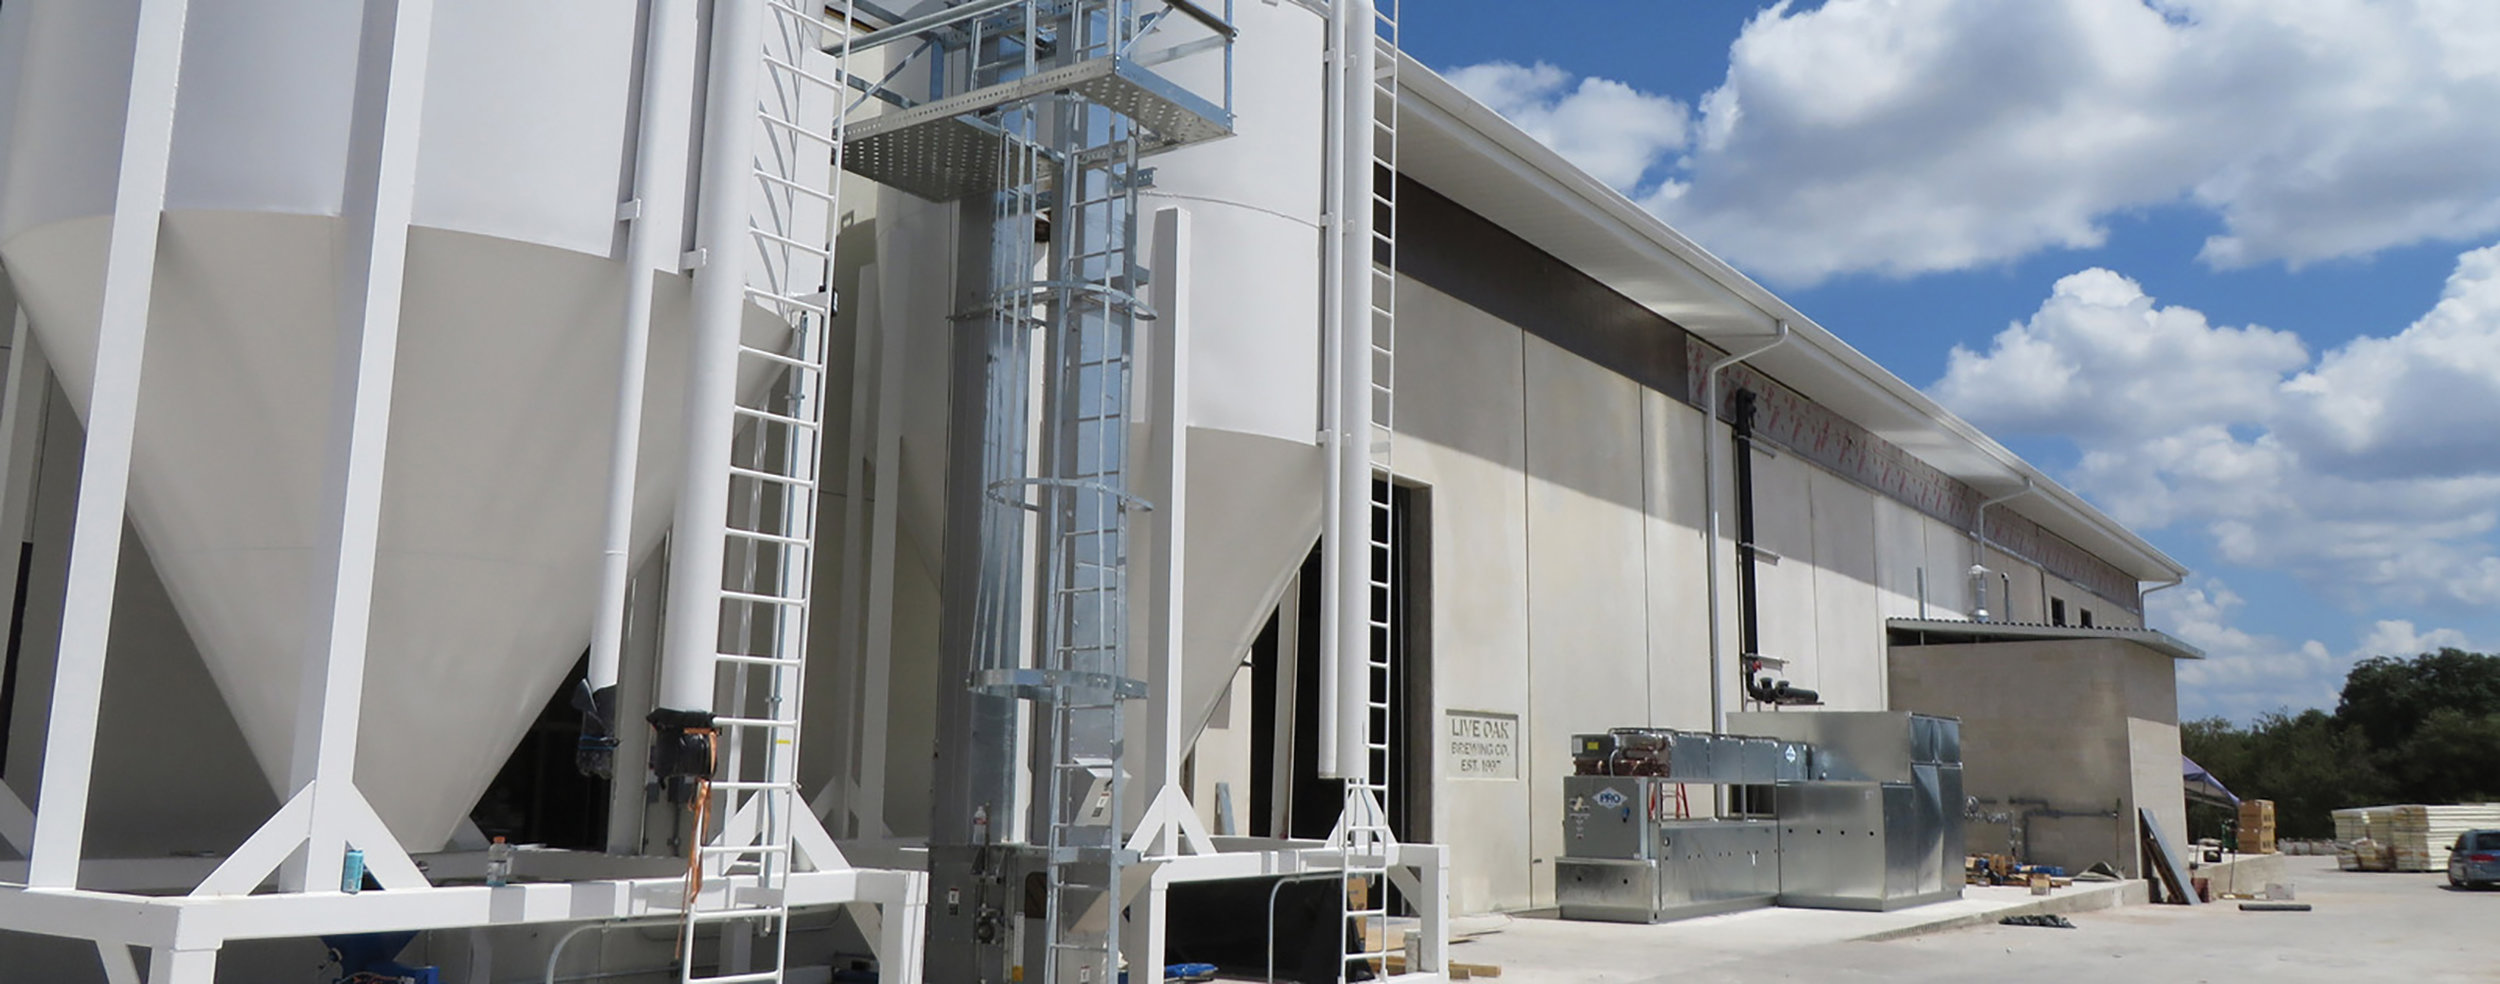 Live Oak's new state-of-the-art brewery opened to the public in February 2016. Located in Southeast Austin, it features a taproom and biergarten.